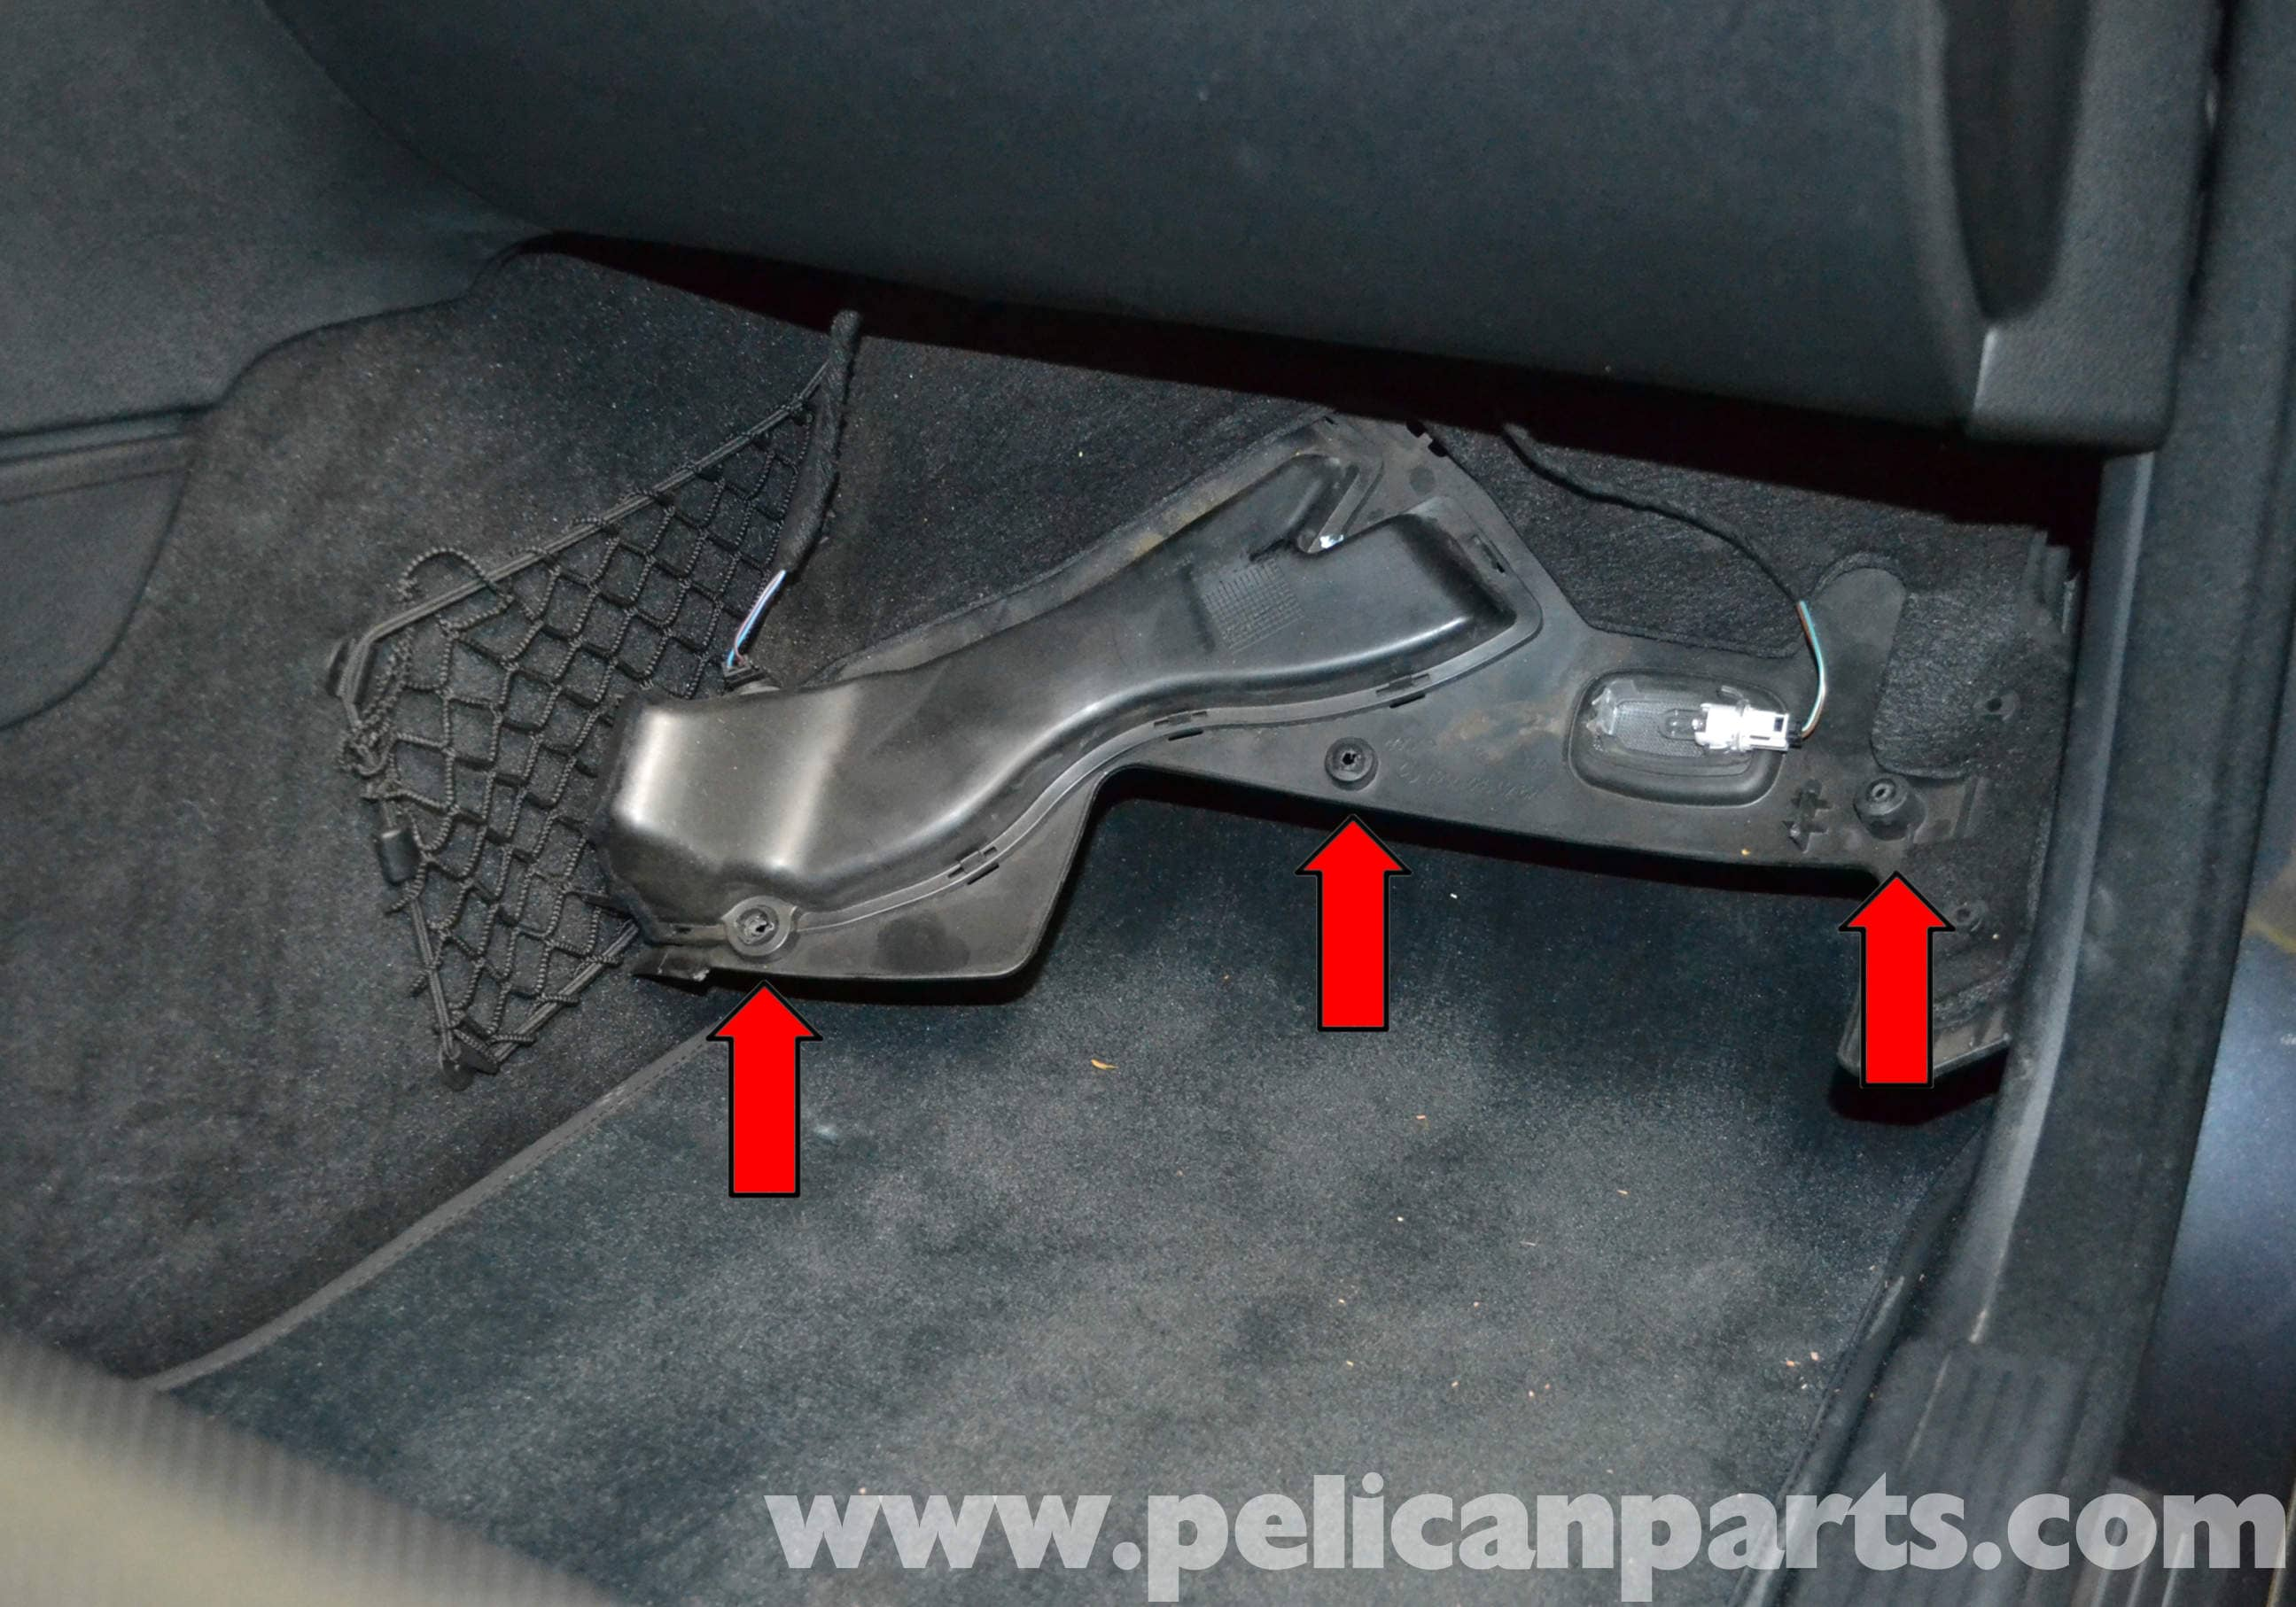 Vw golf glove compartment door